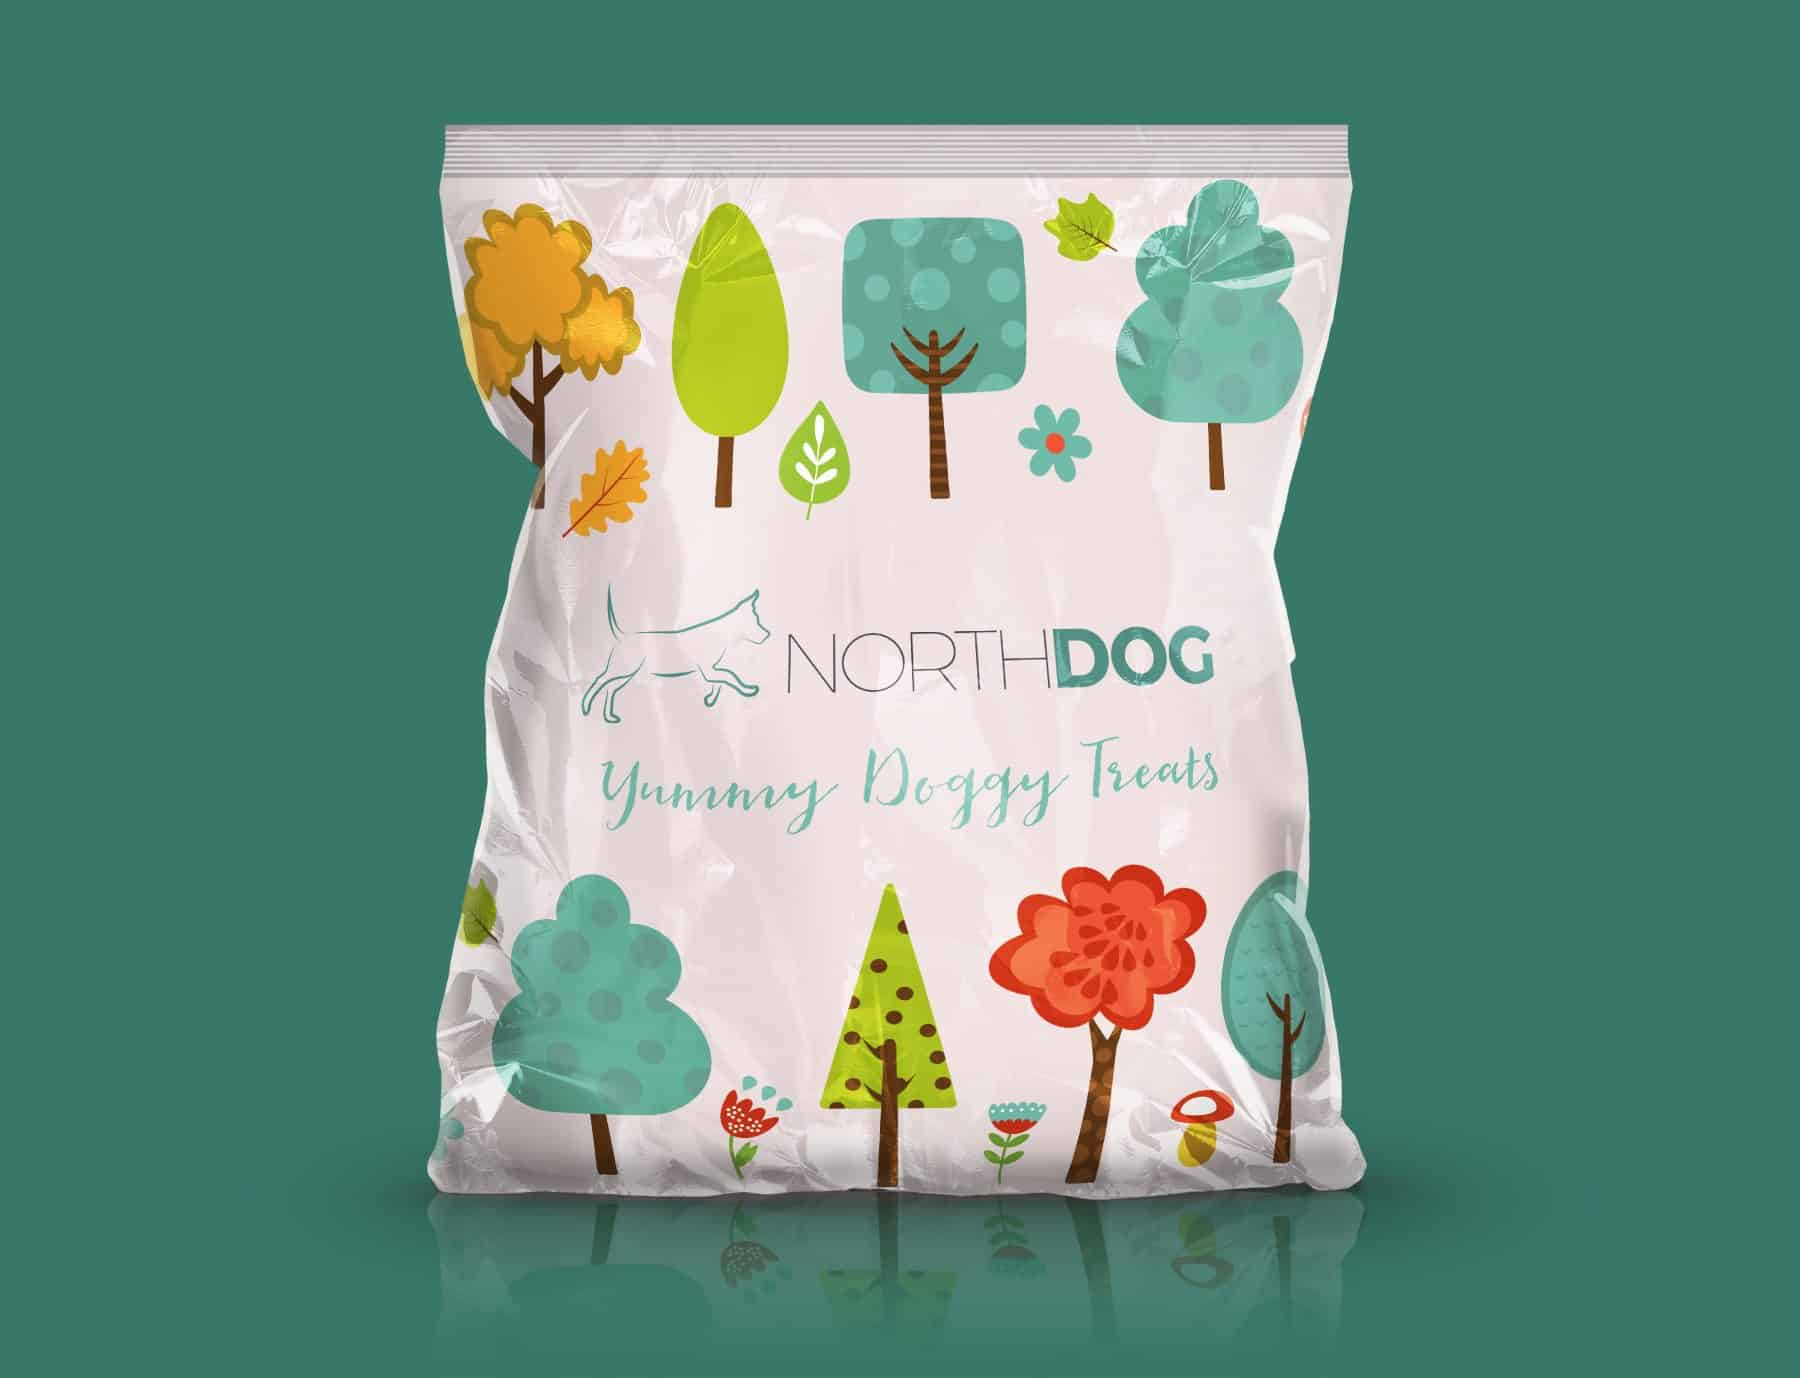 North Dog treats